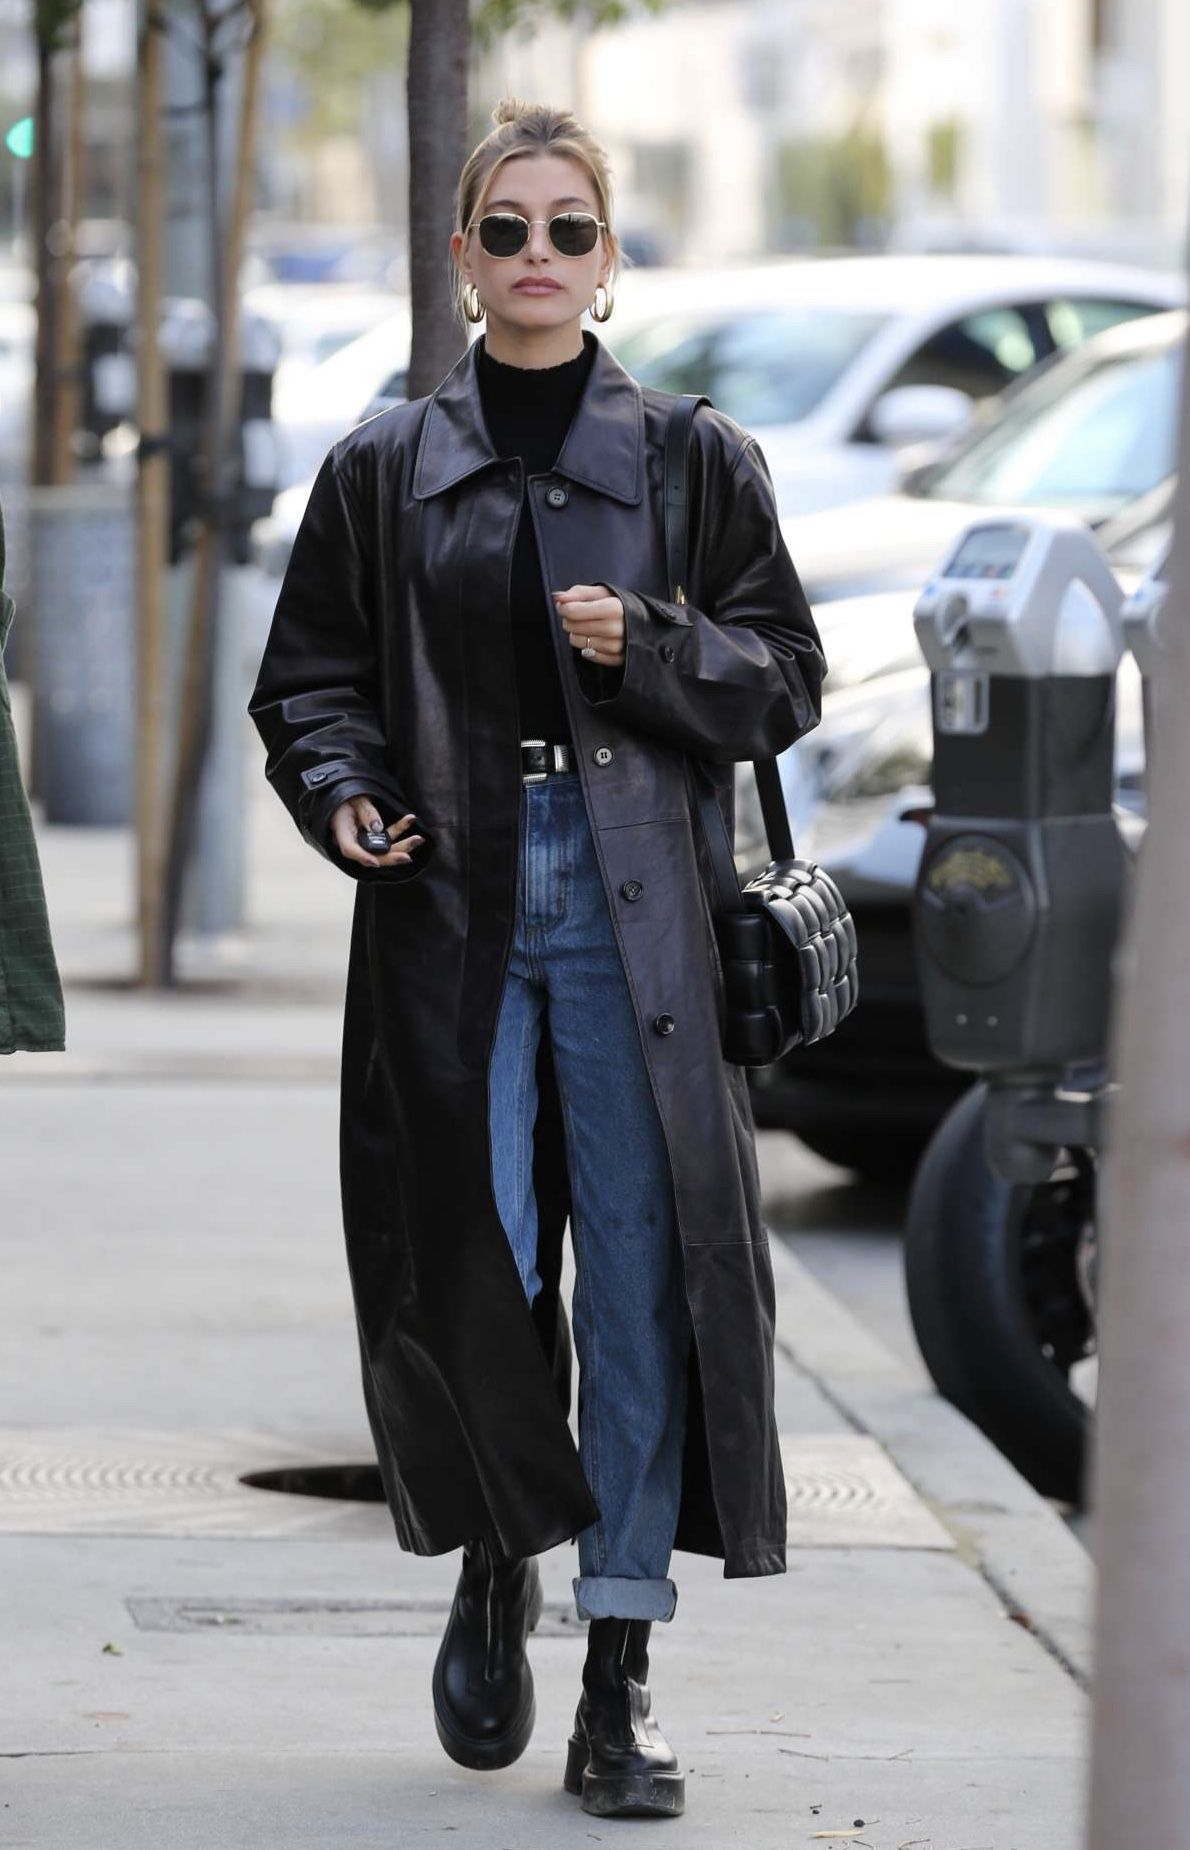 Hailey Bieber zum Mittagessen in West Hollywood 16.01.2020.  Promi-Welt  – Life